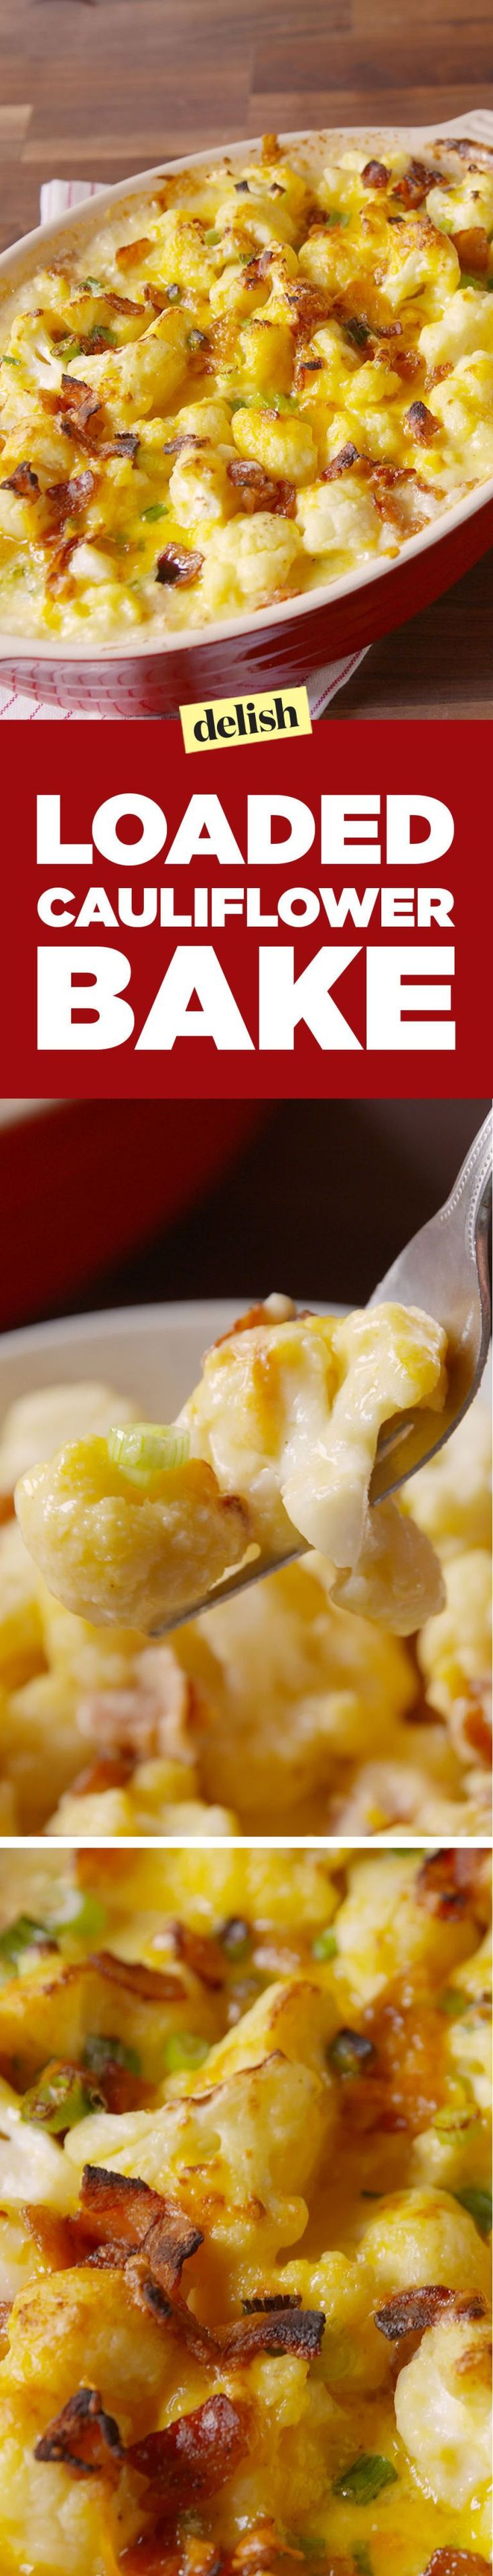 Loaded Cauliflower Bake - Delish.com side dish or double for entree